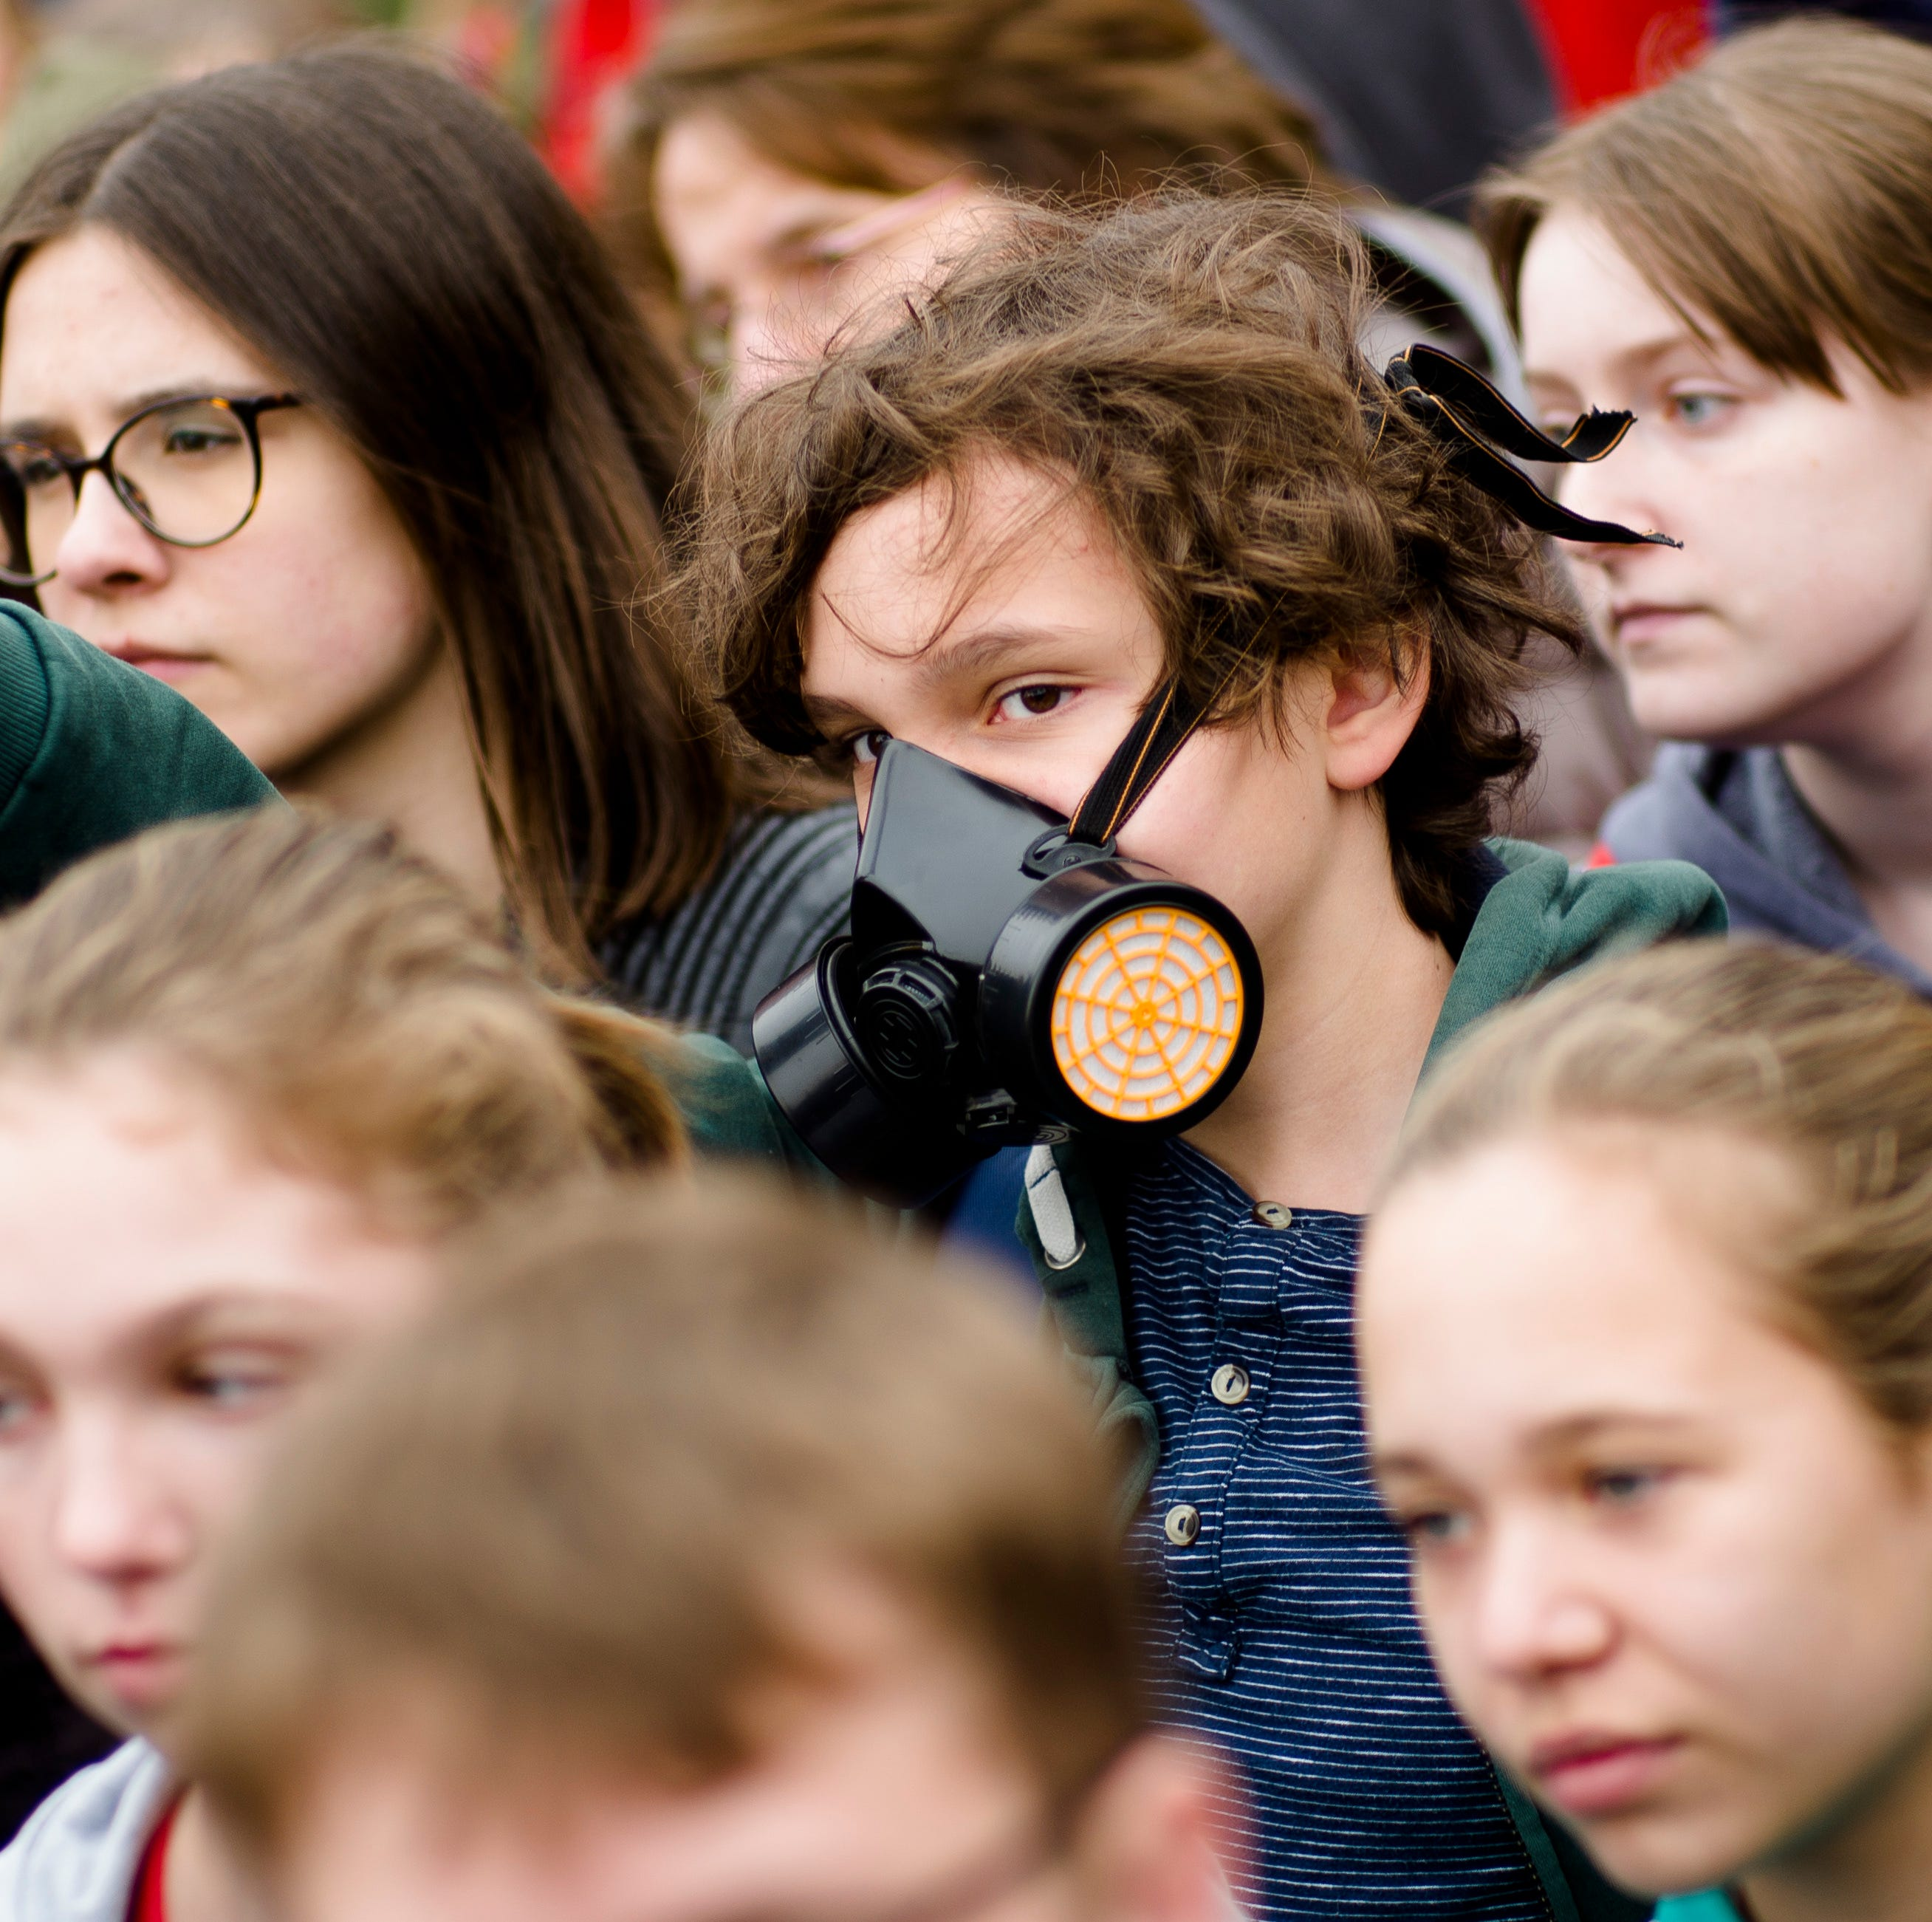 A boys wears a respiratory protection mask as he attends a students climate strike as part of the Friday's For Future movement in Berlin, Friday, April 5, 2019.